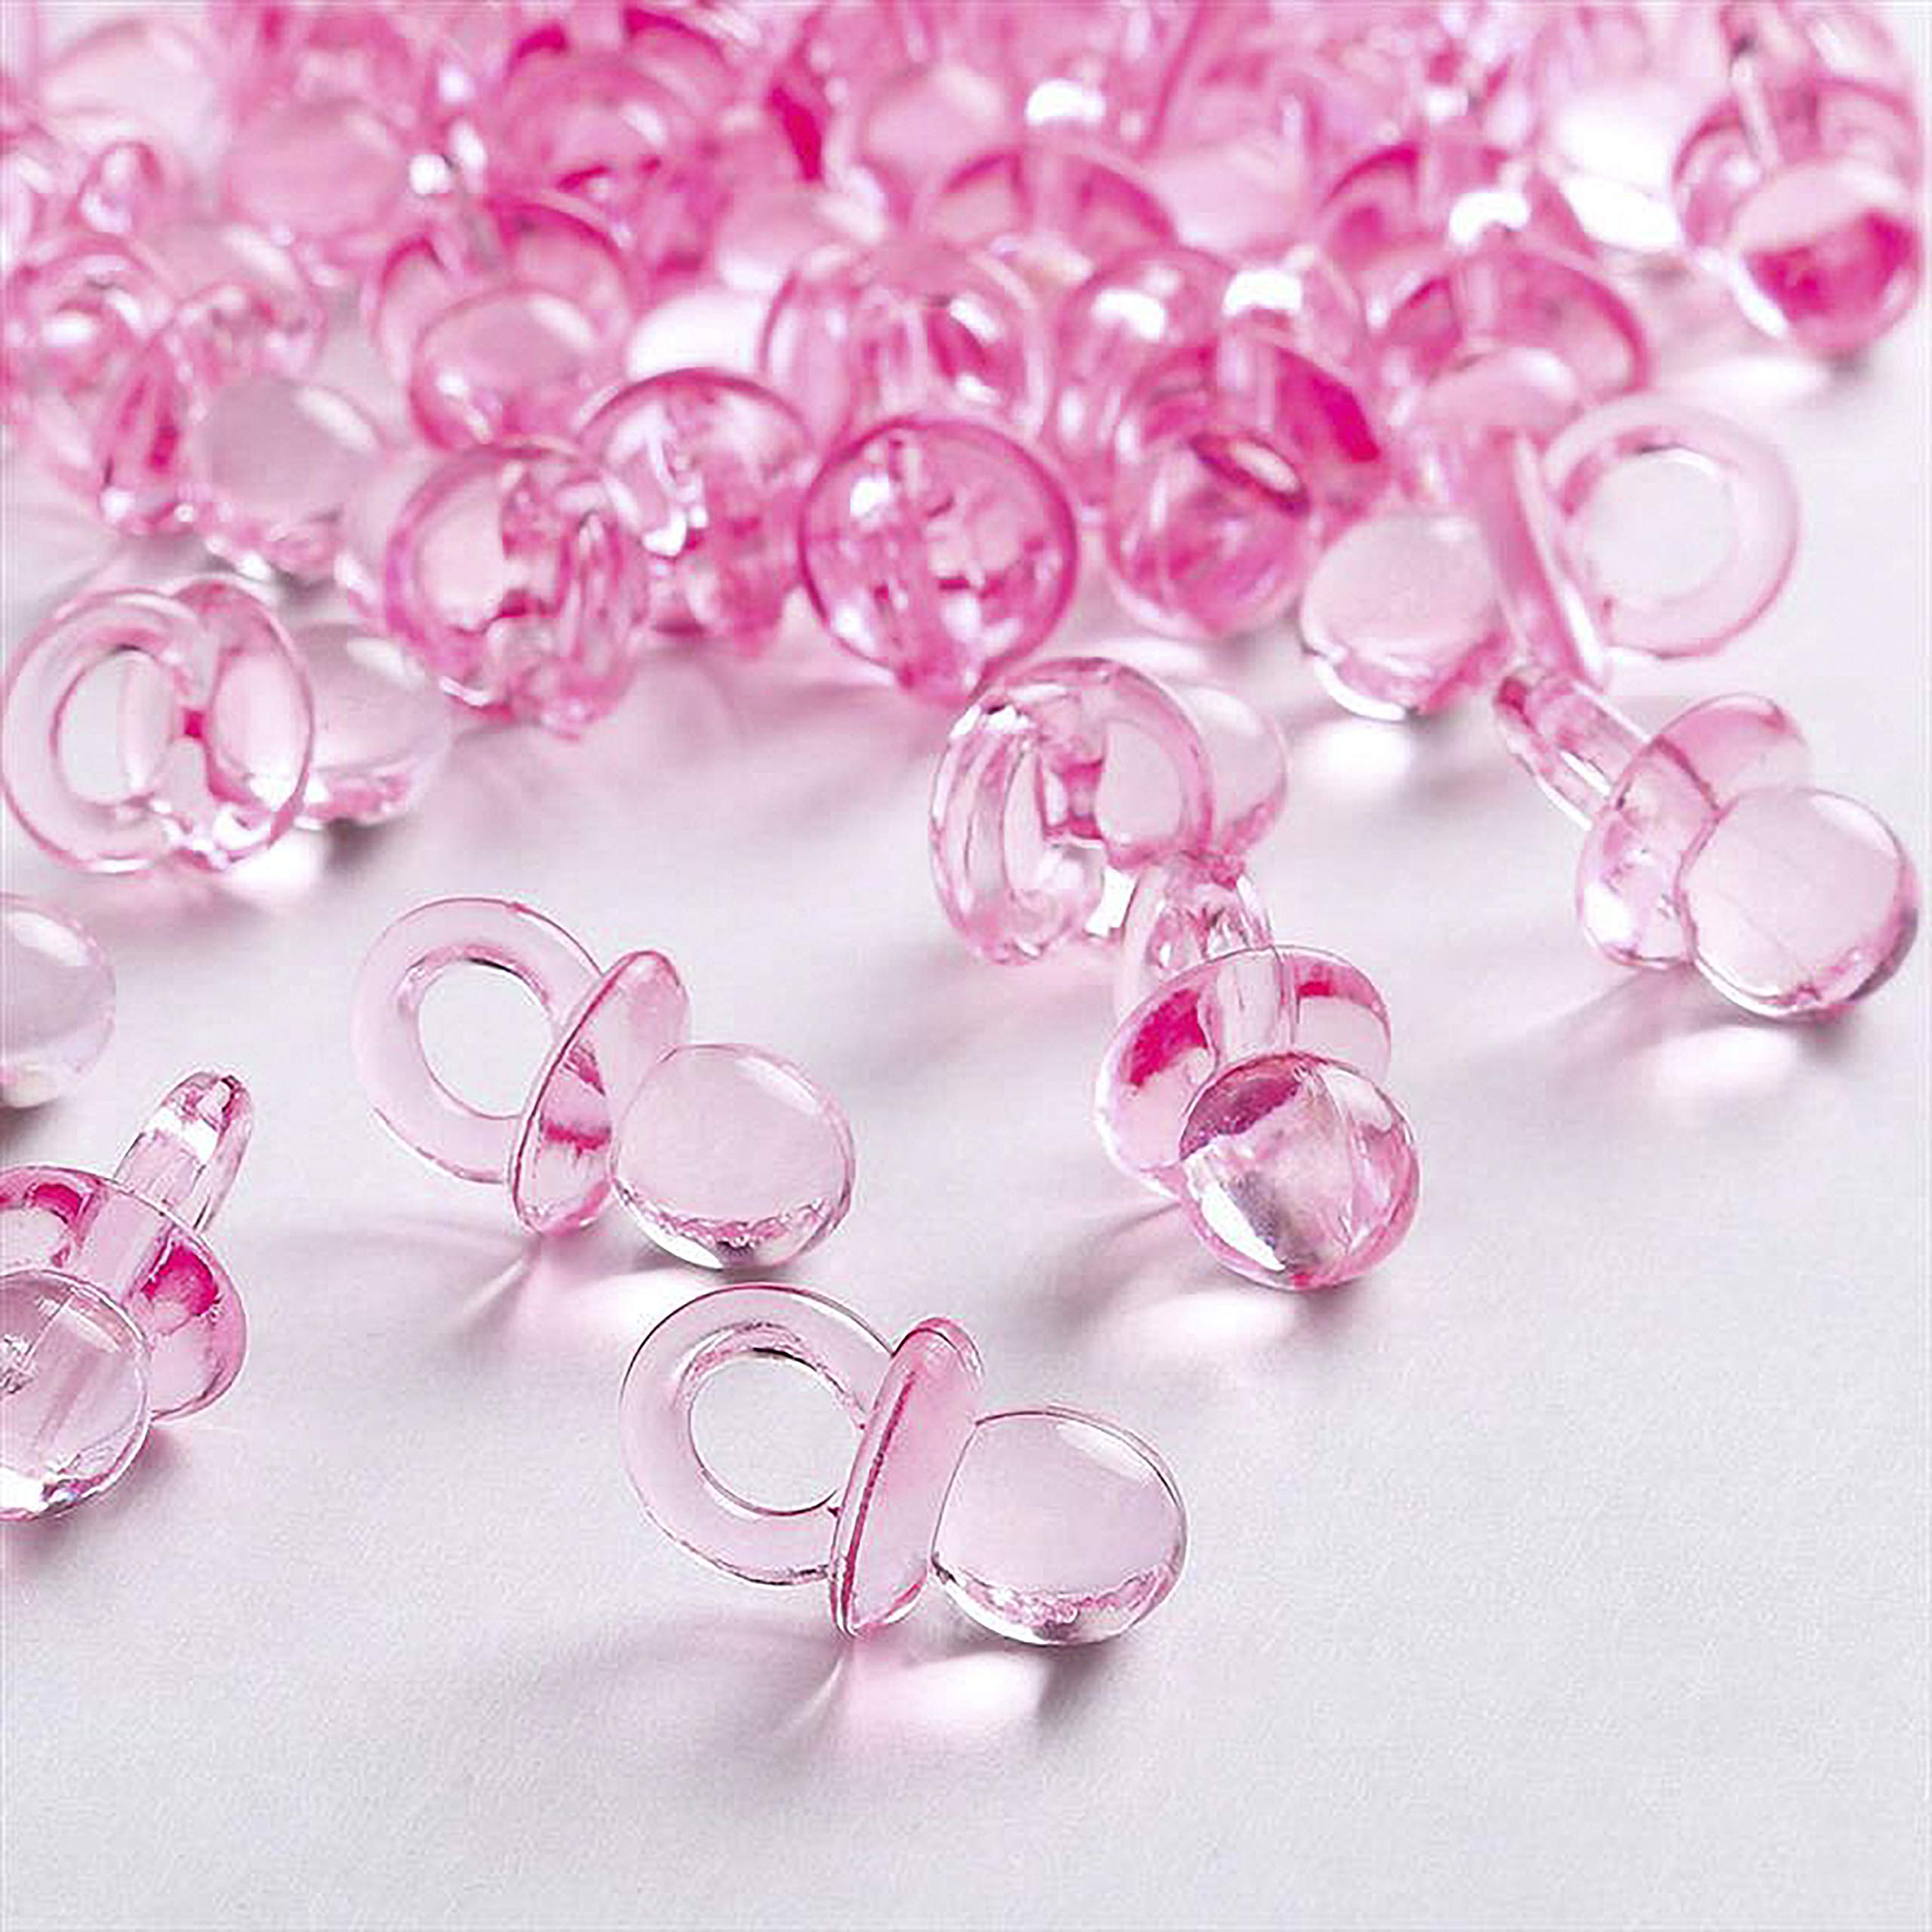 Adorox (144 Pieces Pink Acrylic Baby Pacifiers Baby Shower Decoration Table Scatter